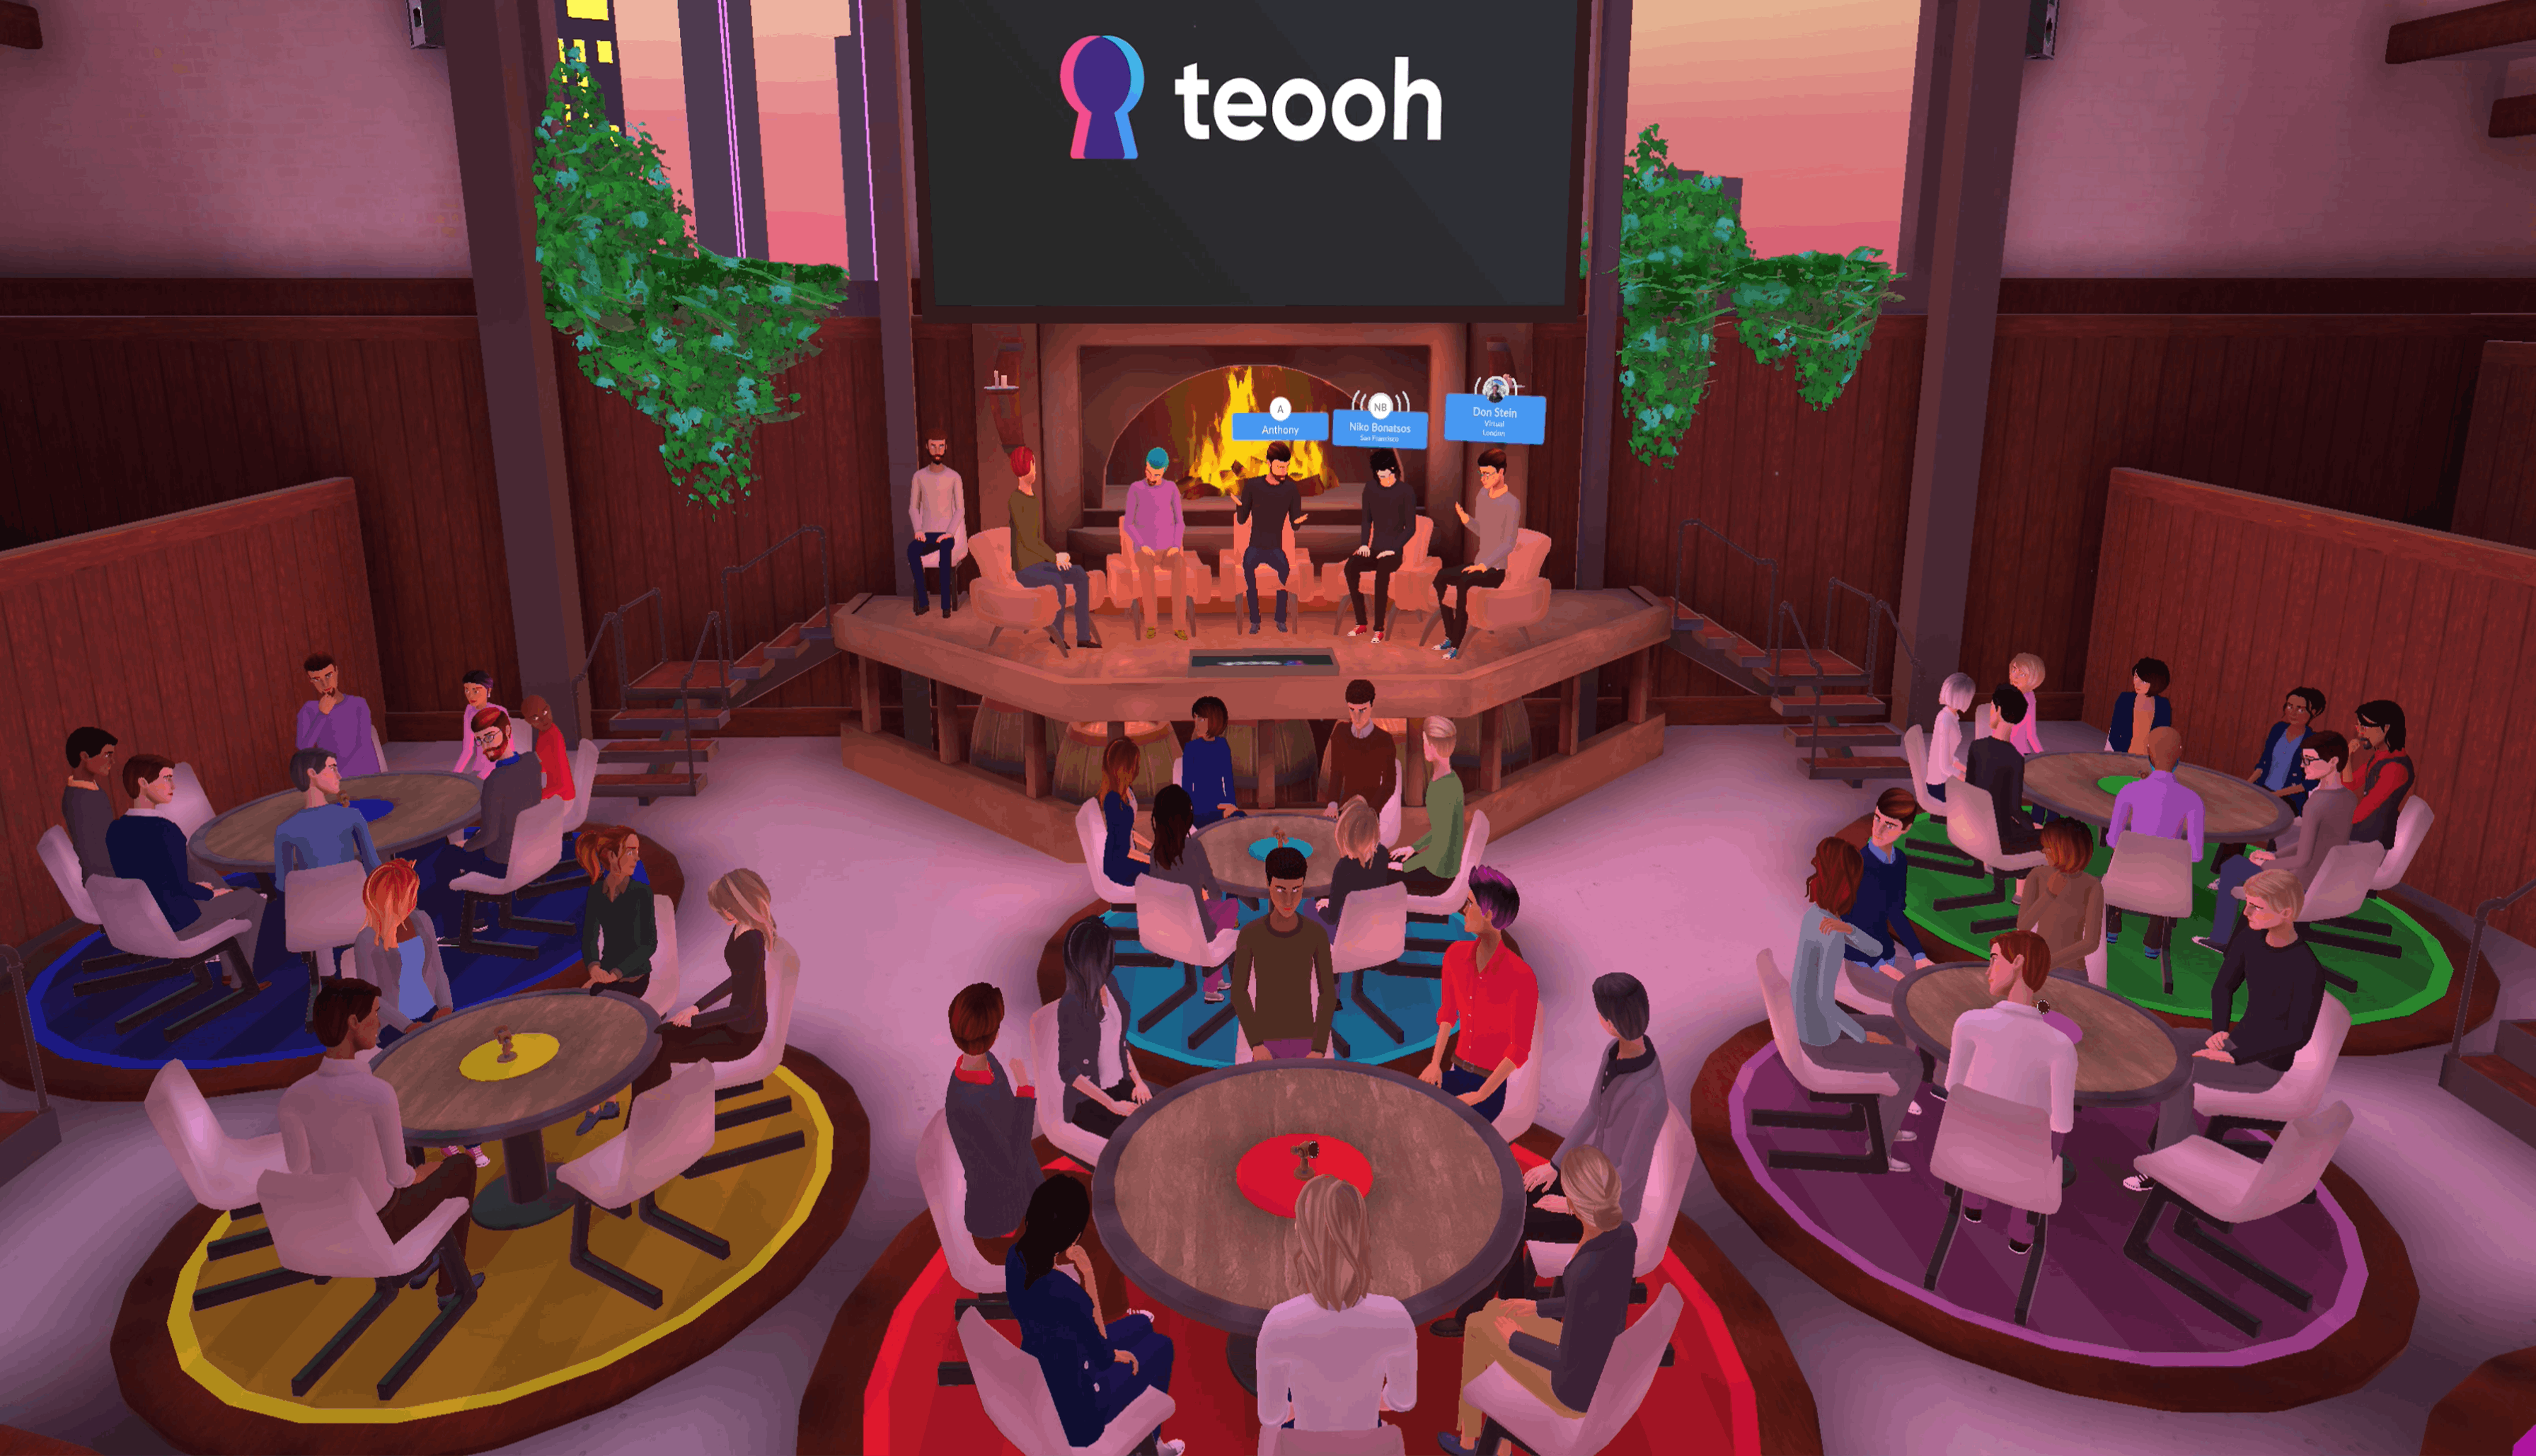 meetings and business networking events in Teooh's avatar based virtual reality platform